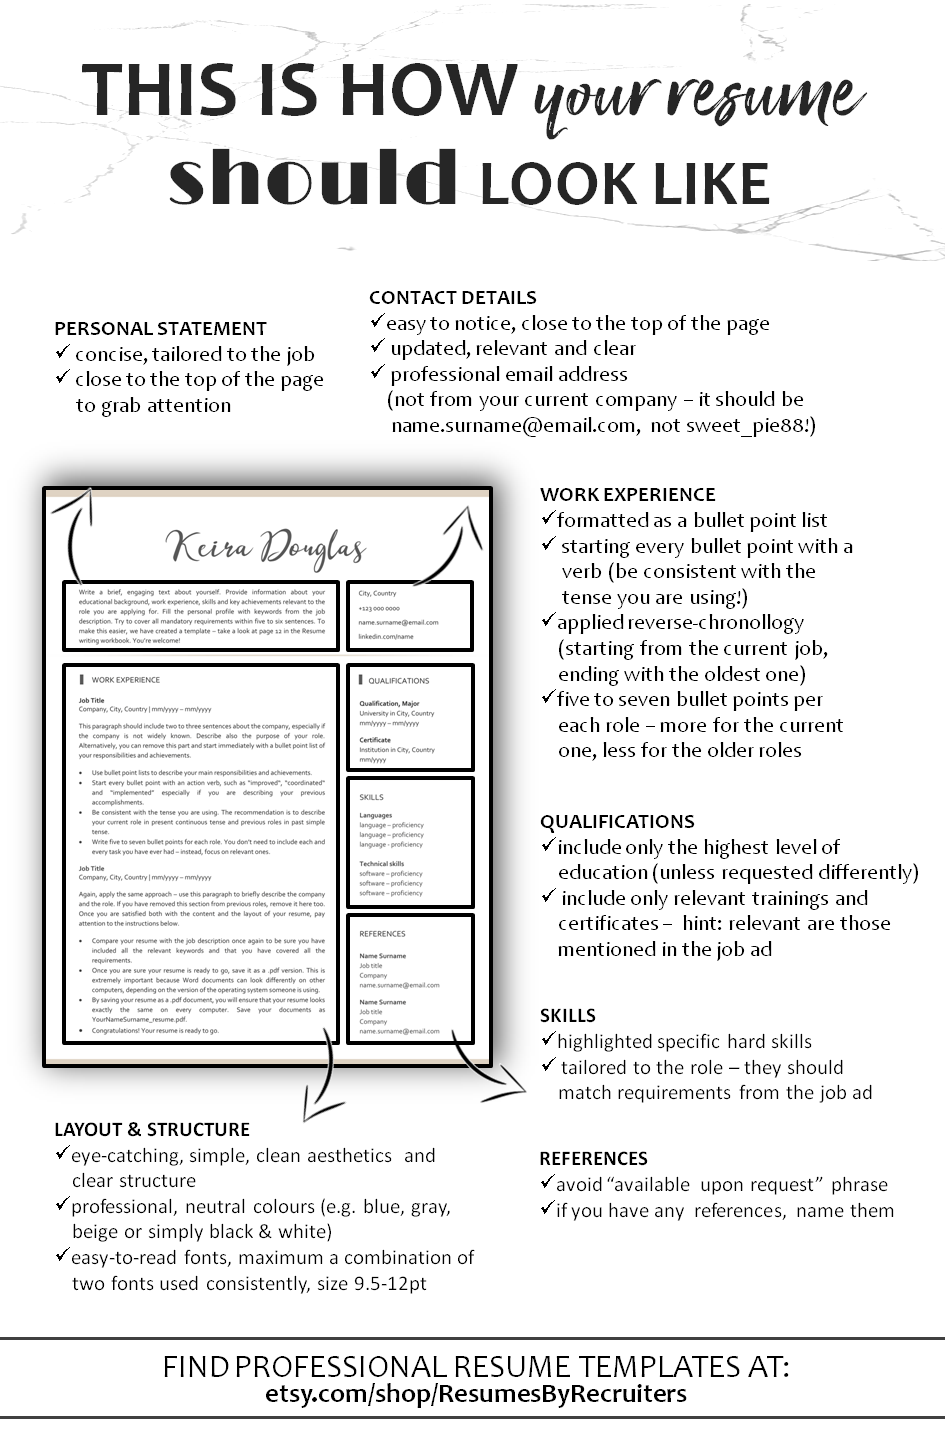 Learn how to write a perfect resume in less than one